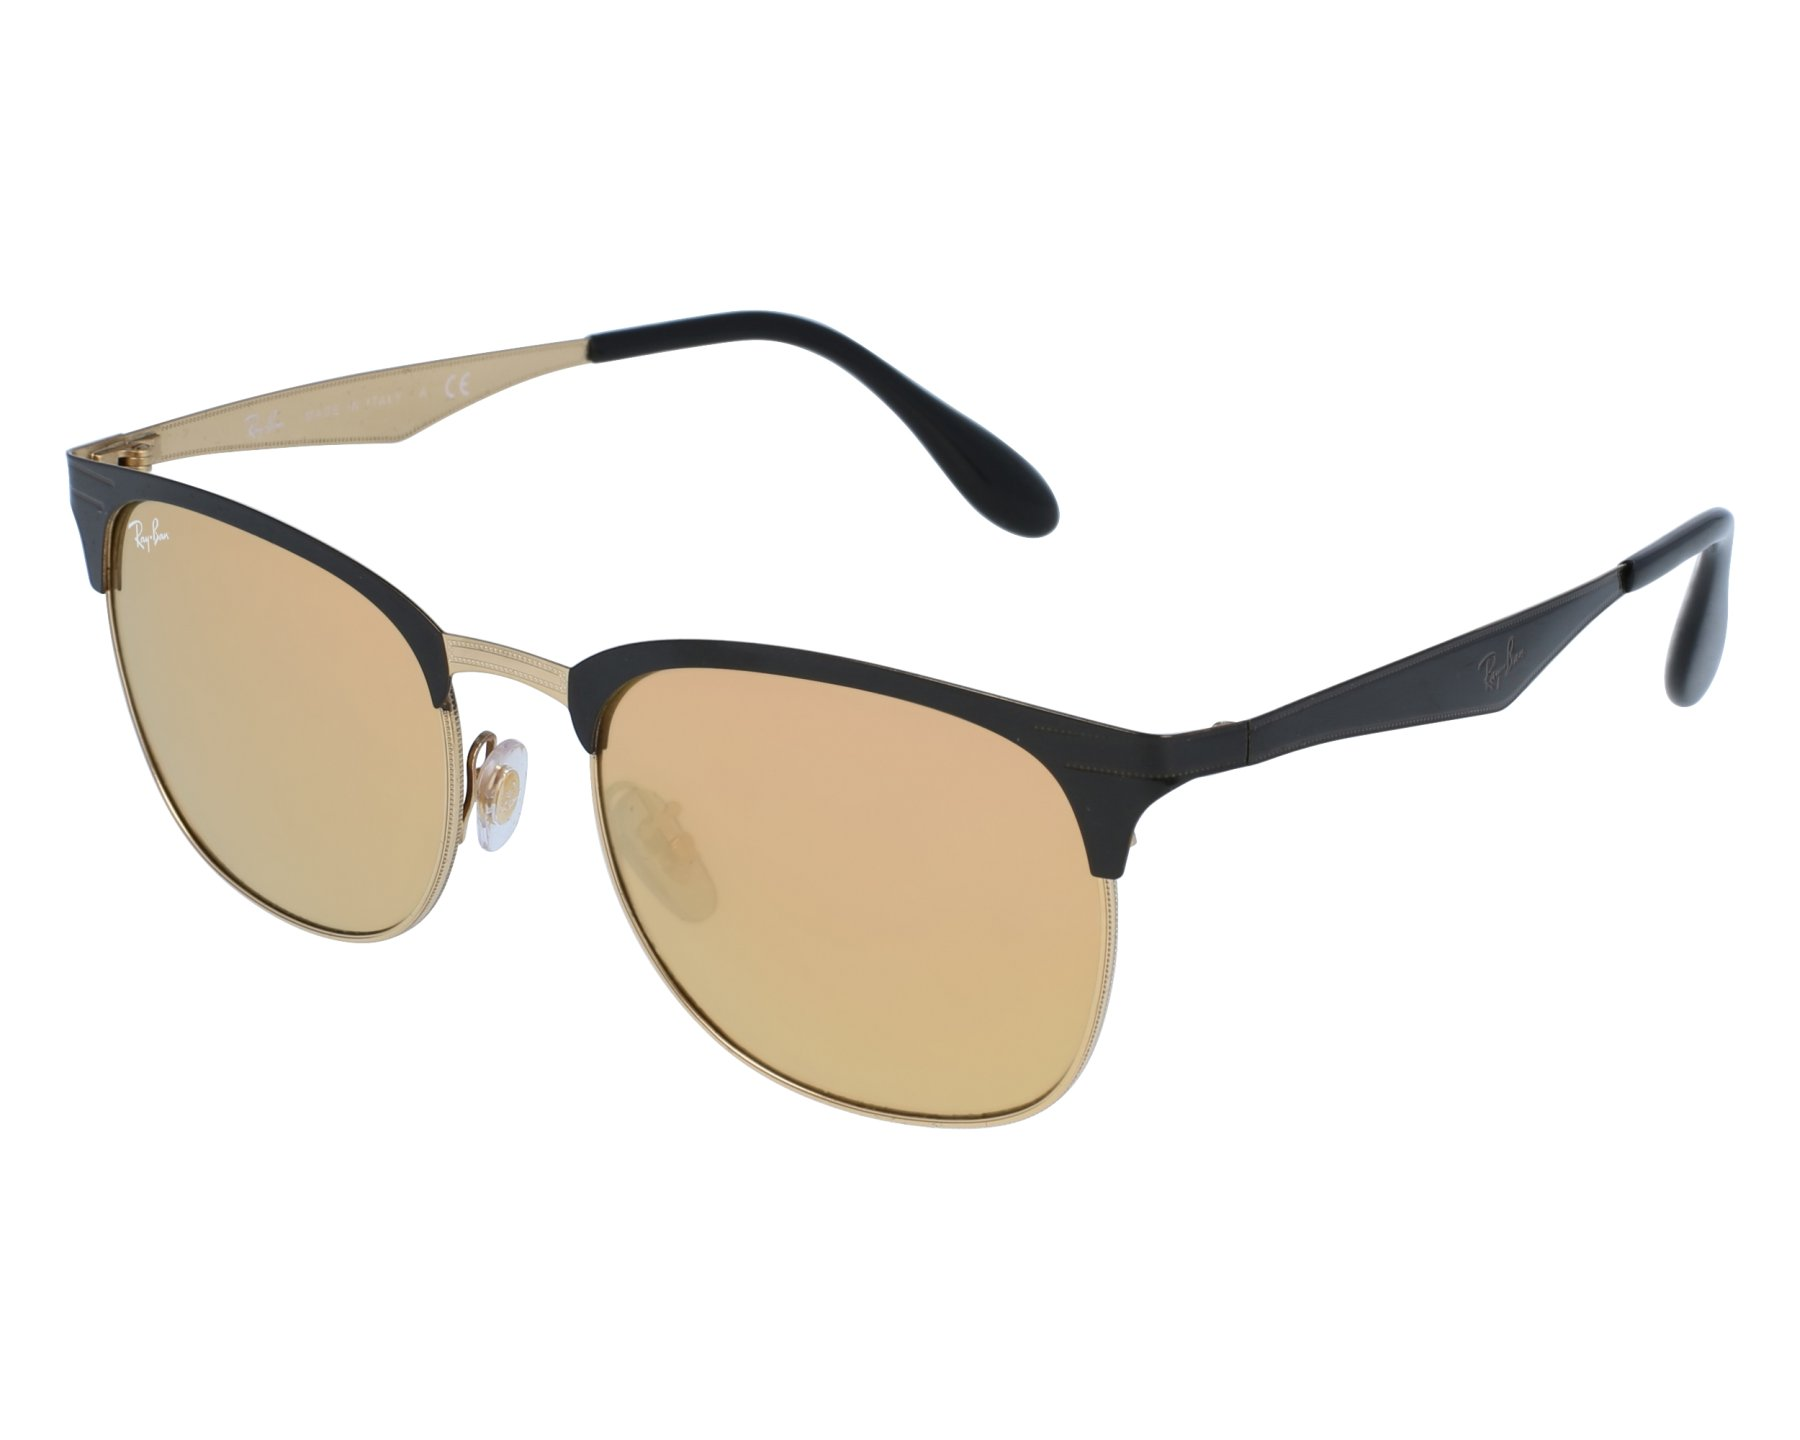 dc5eabf07c1 Sunglasses Ray-Ban RB-3538 187 2Y 53-19 Gold Black front